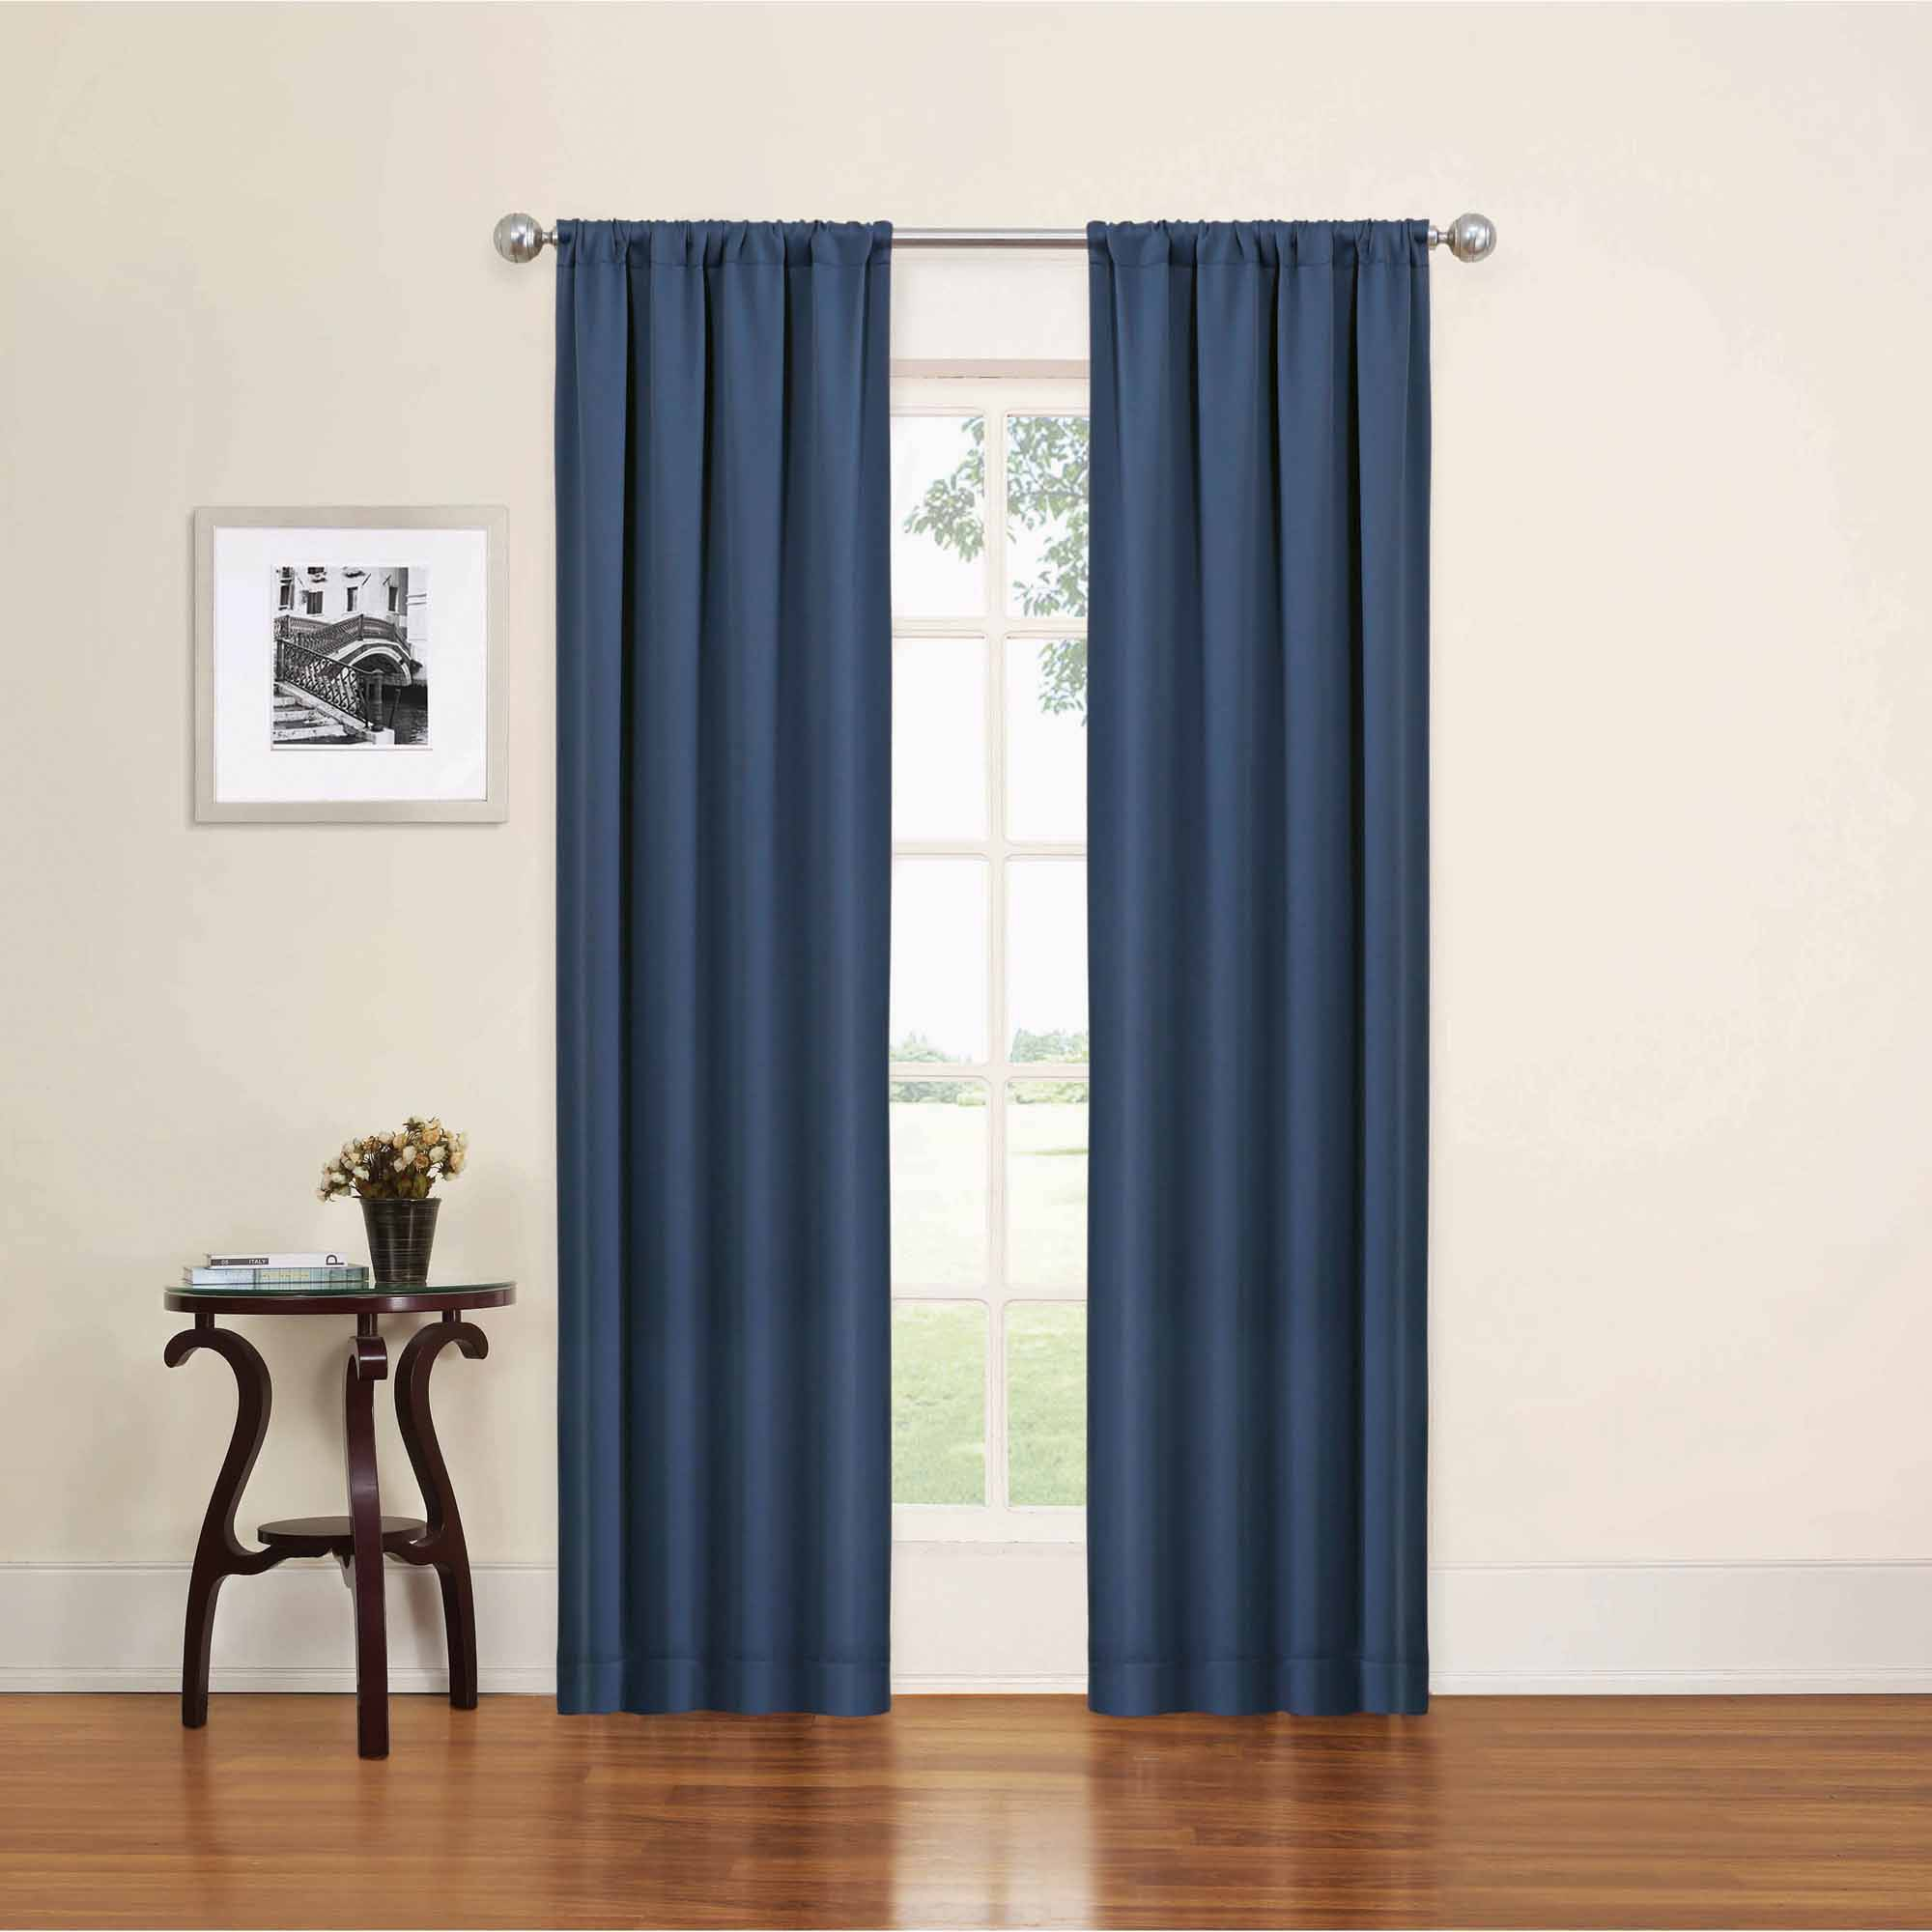 White Curtains With Navy Trim